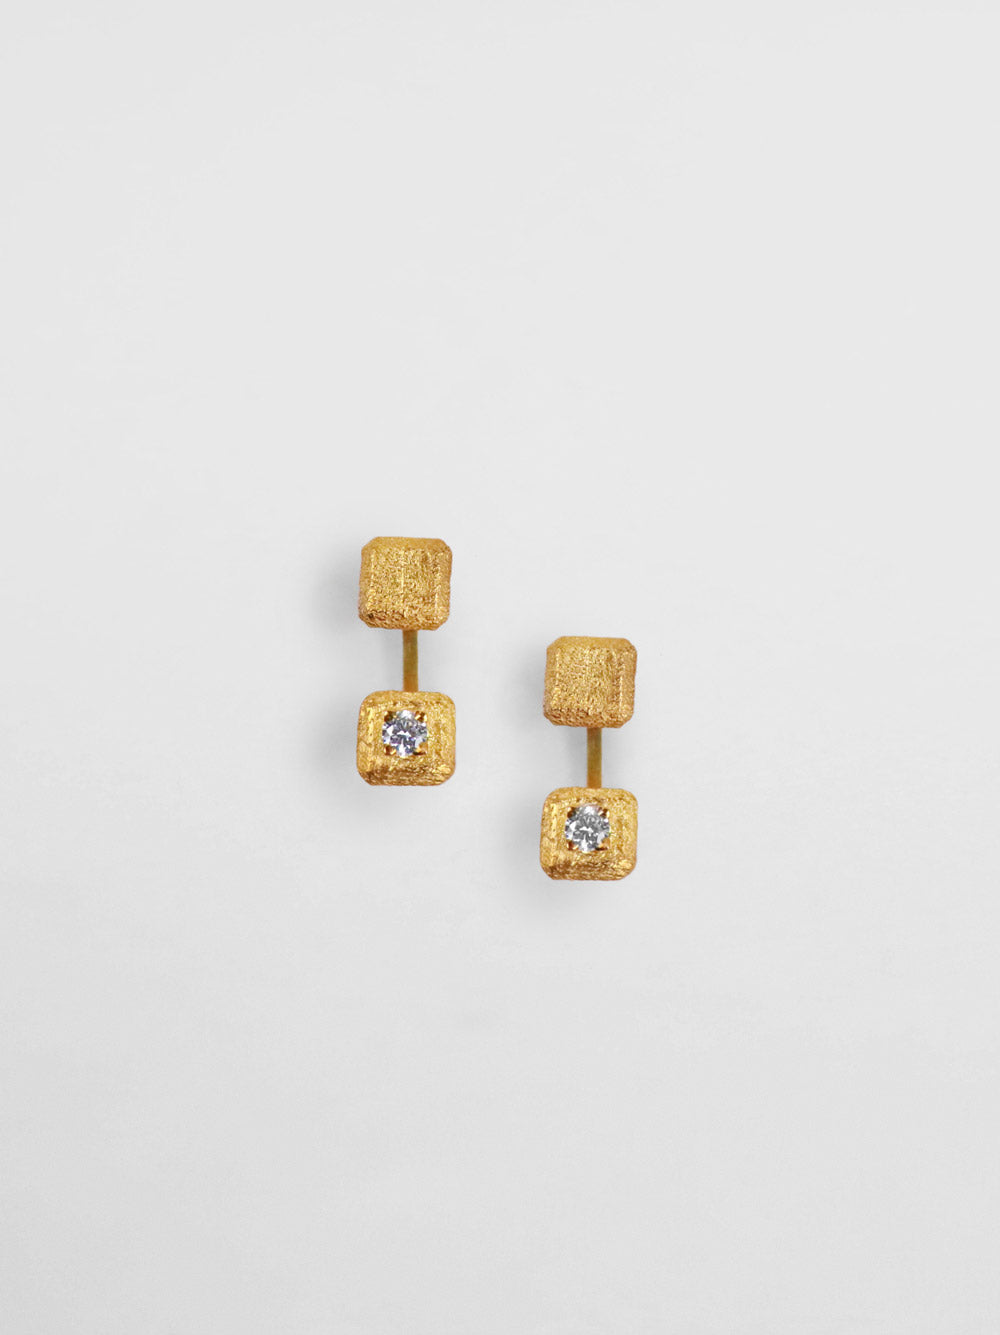 Paris Rive Gauche Earrings – Paula Vieira Jewellery